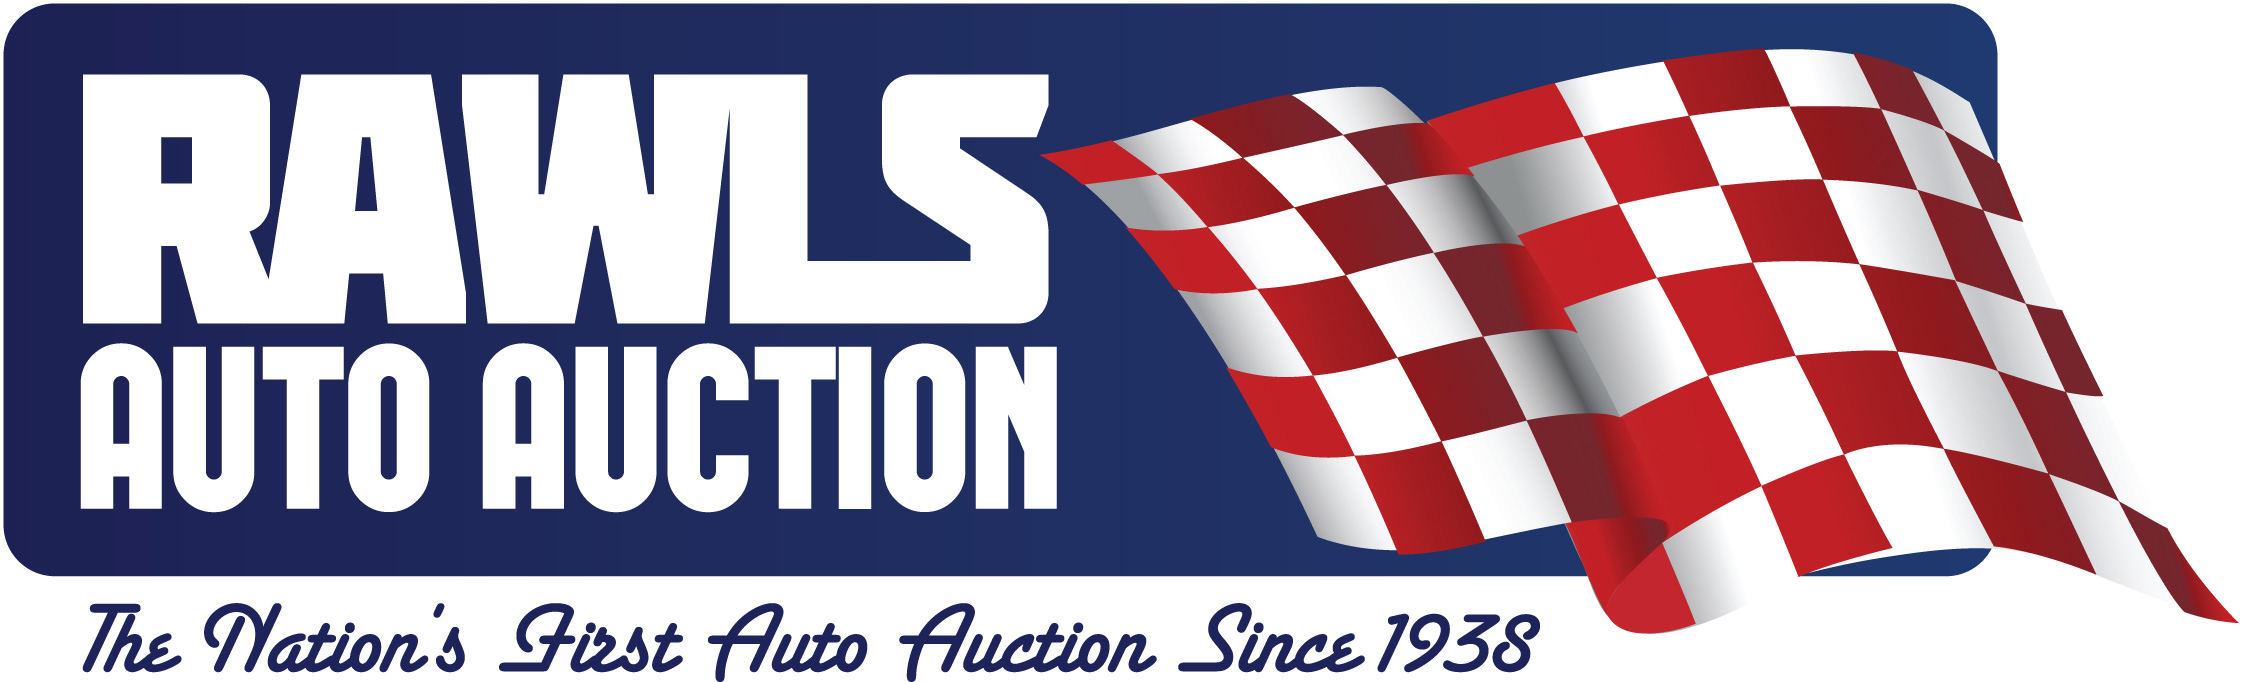 Gsa Auto Auction >> Rawls Auto Auction | Auto Remarketing